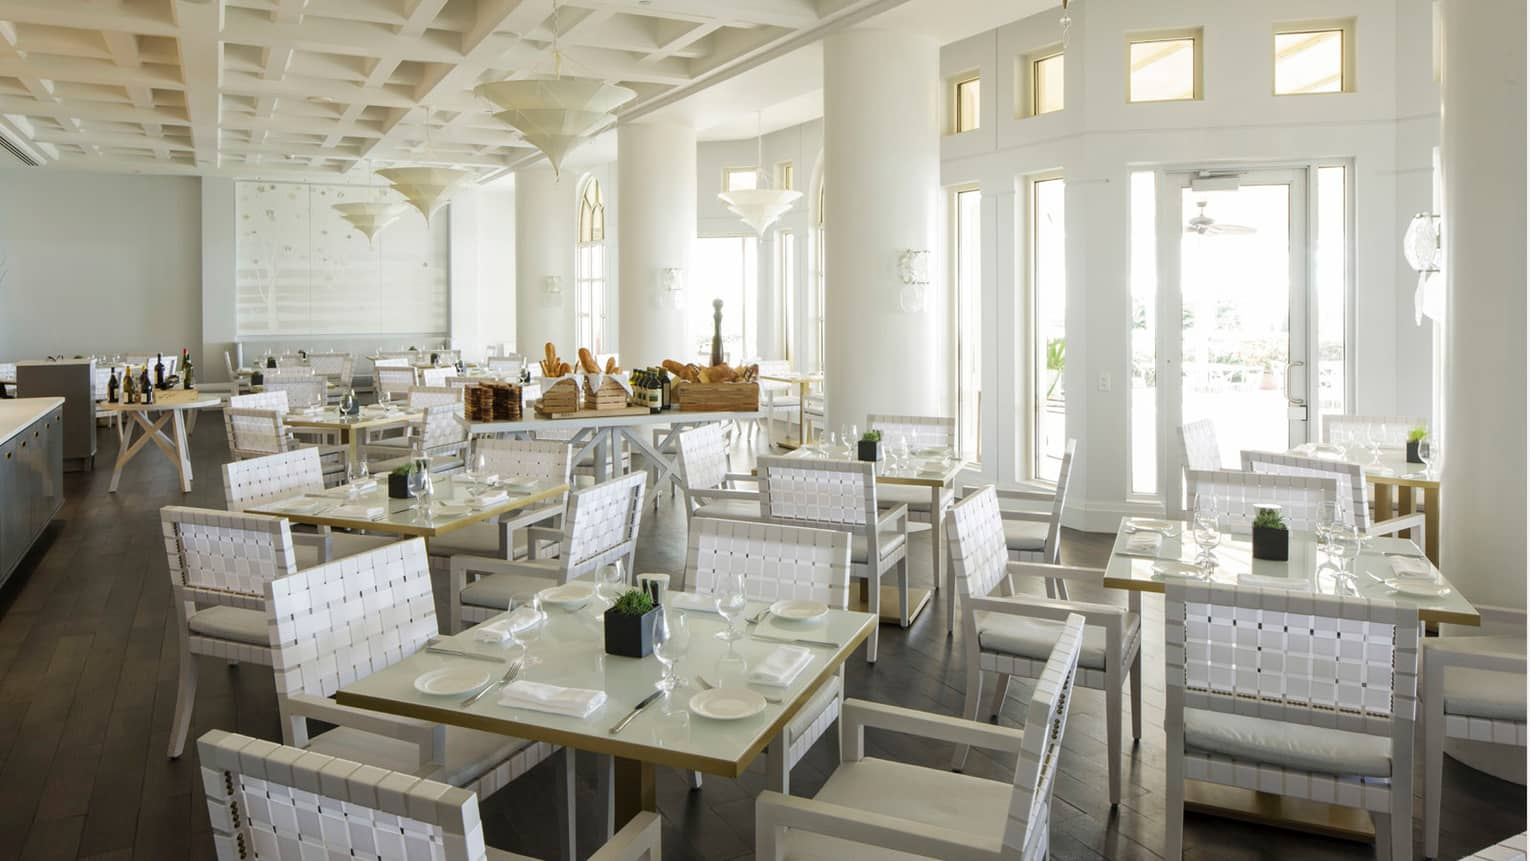 Graze dining room with white columns, tables and white picnic-style chairs, table with bread baskets and olive oil